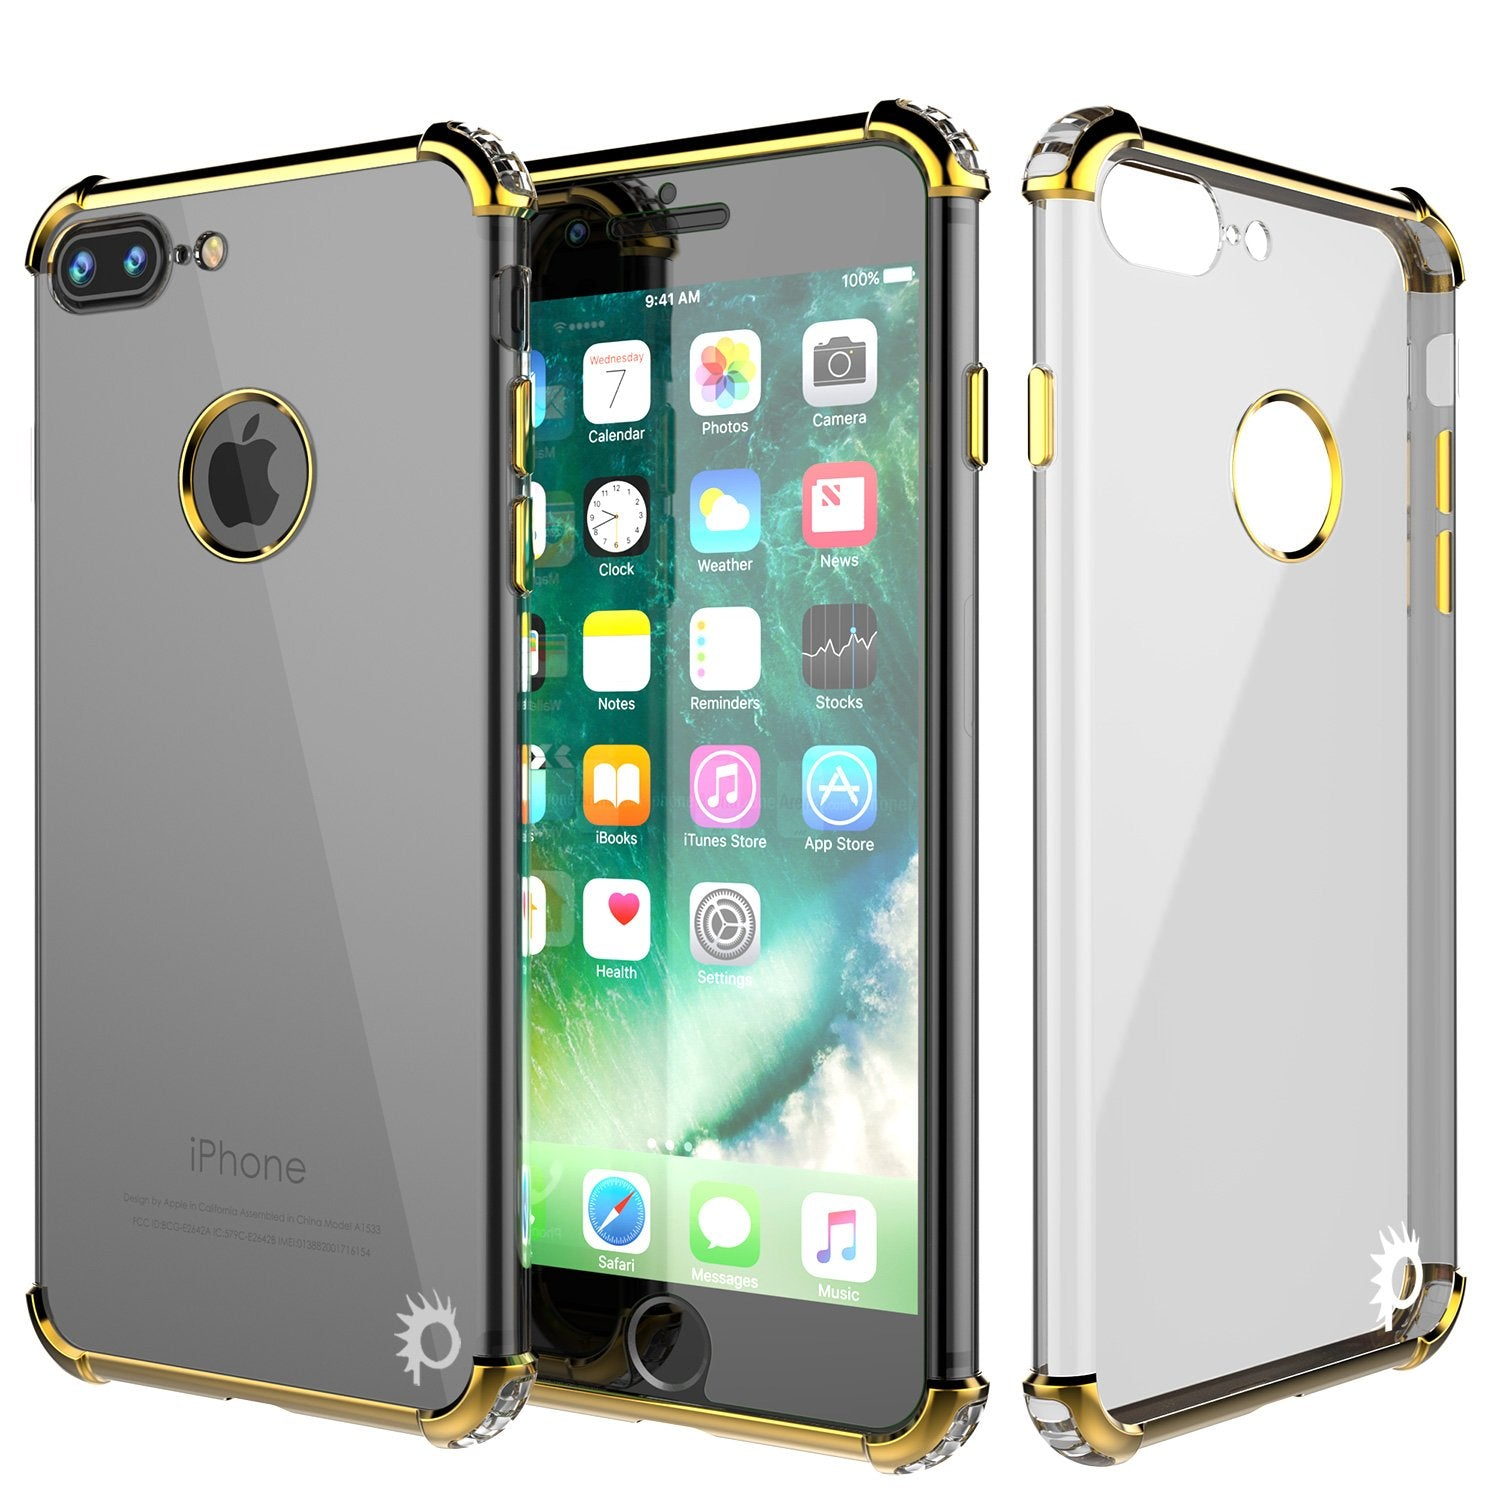 iPhone 8 PLUS Case, Punkcase [BLAZE SERIES] Protective Cover W/ PunkShield Screen Protector [Shockproof] [Slim Fit] for Apple iPhone 7/8/6/6s PLUS [RoseGold]